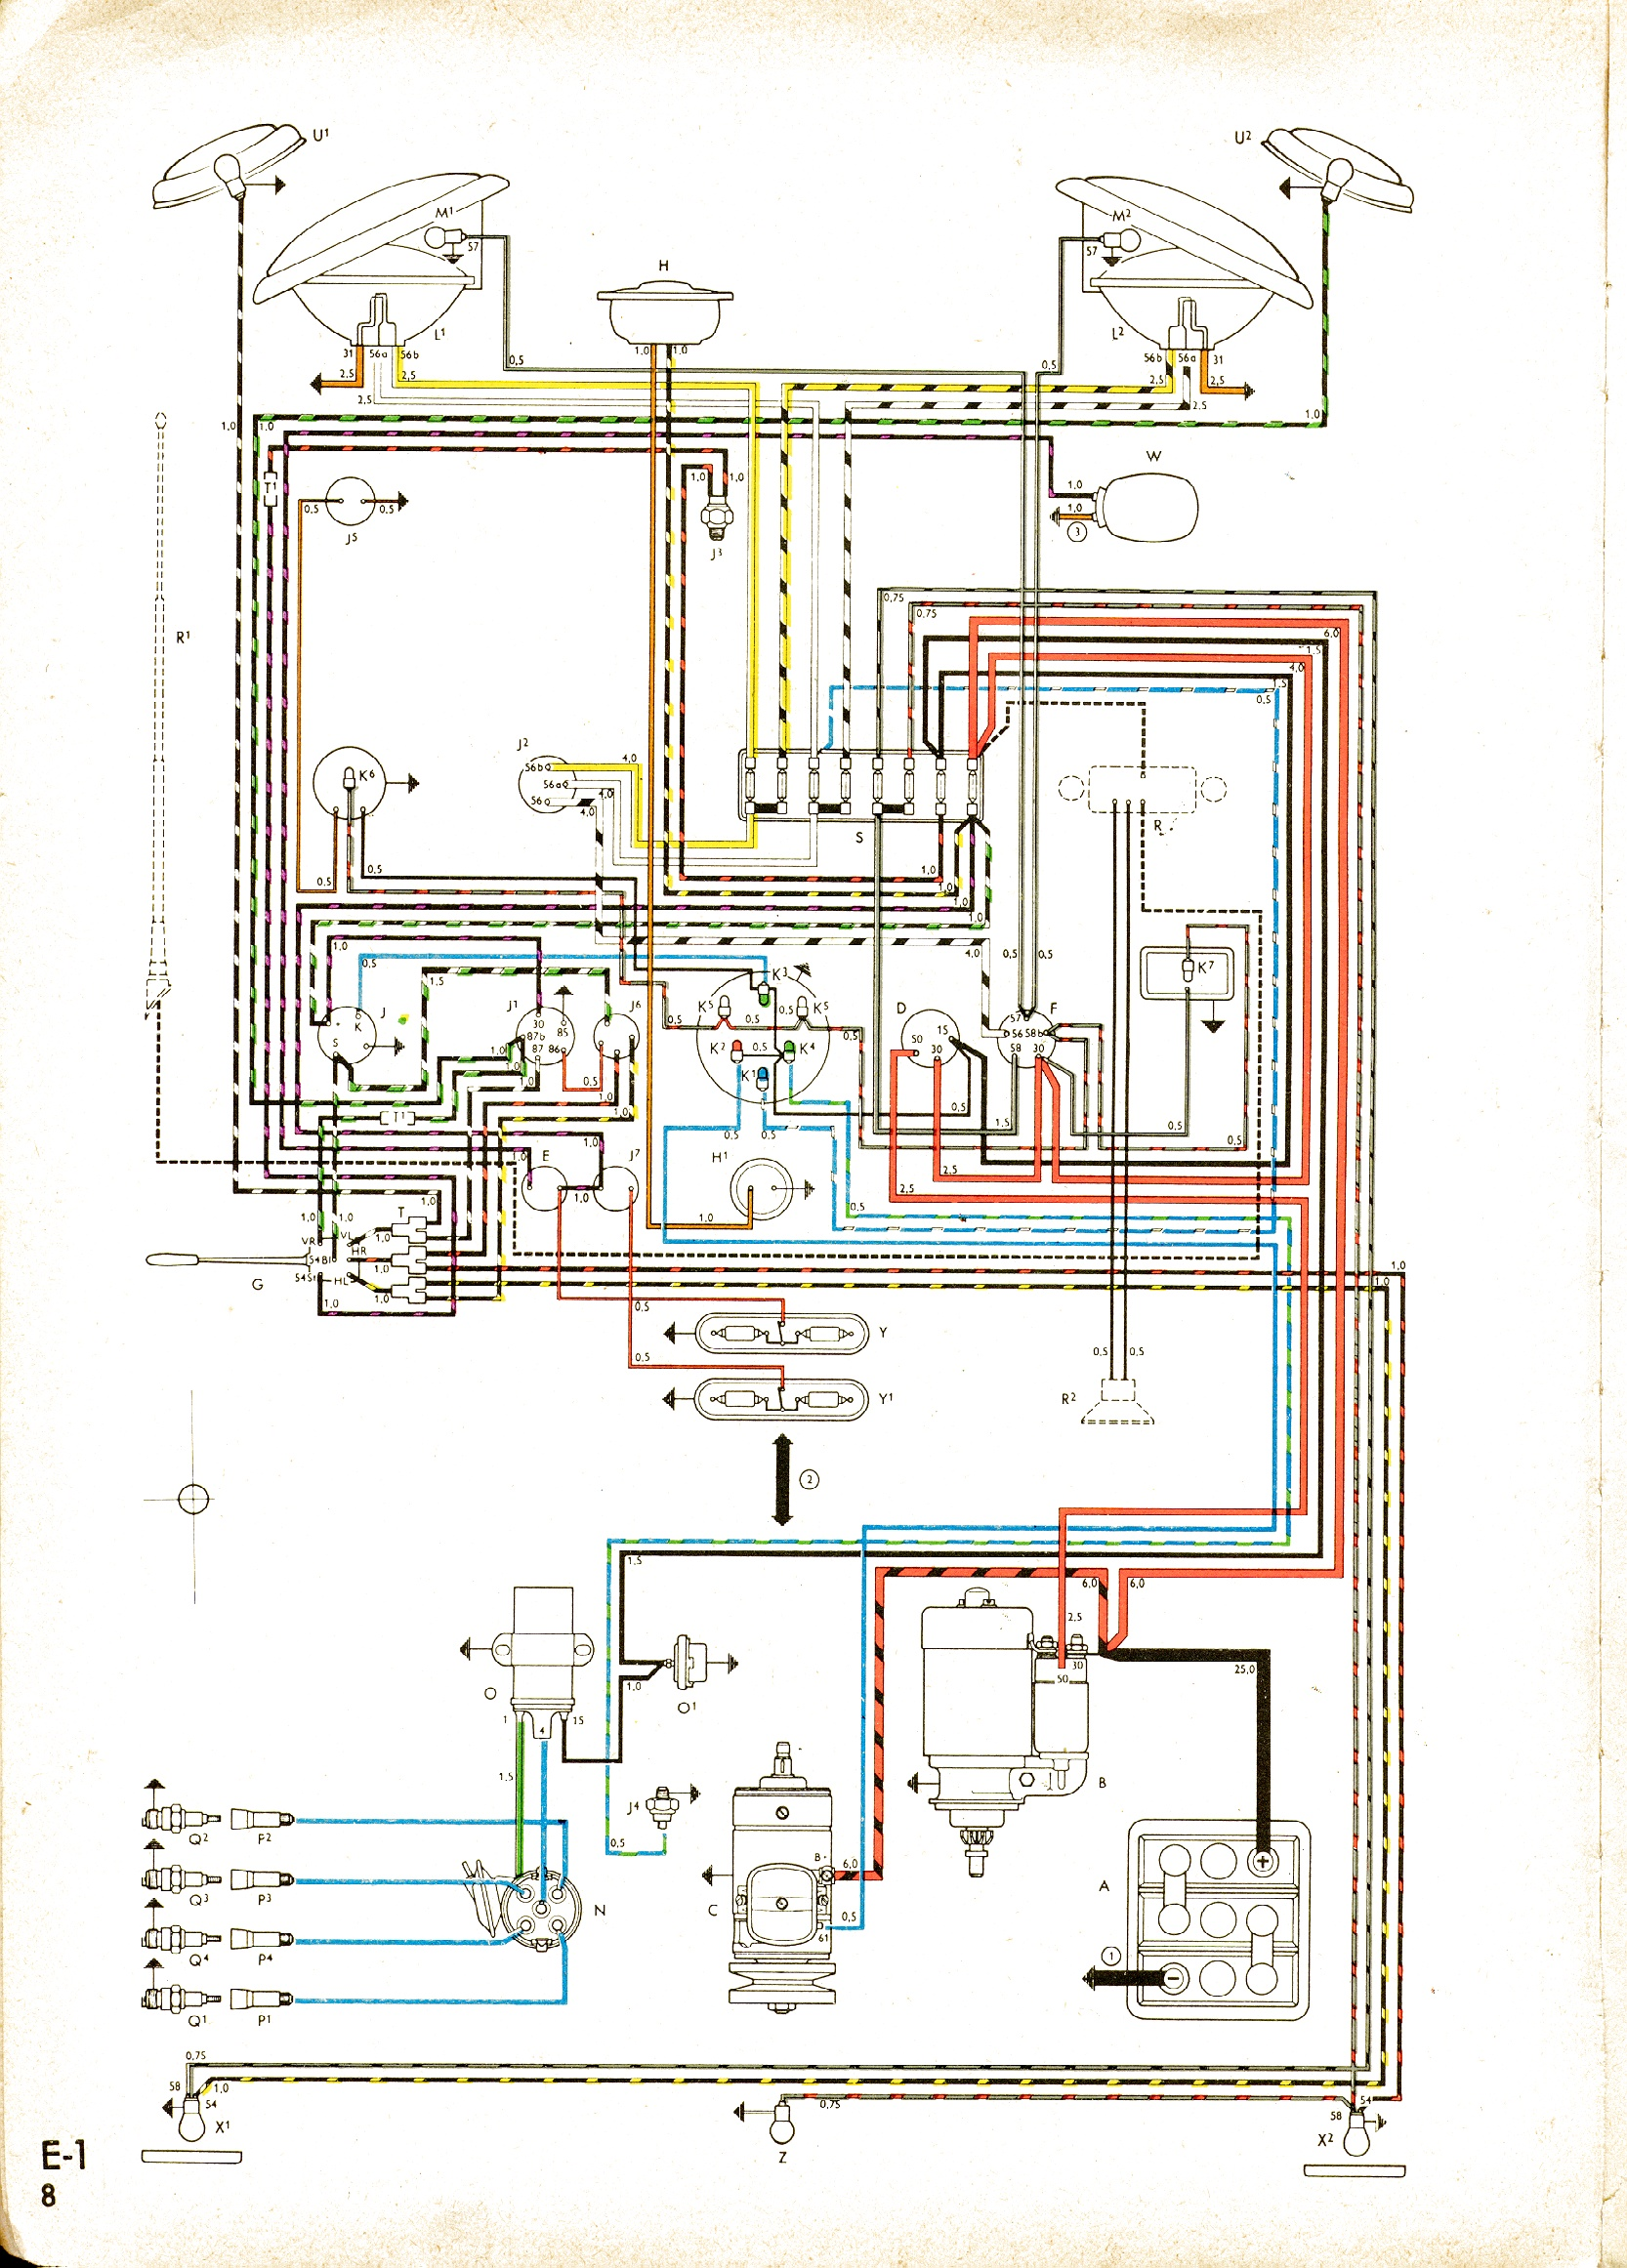 1964 Vw Headlight Switch Wiring Cat5e Wall Schematic Wiring Diagram For Wiring Diagram Schematics